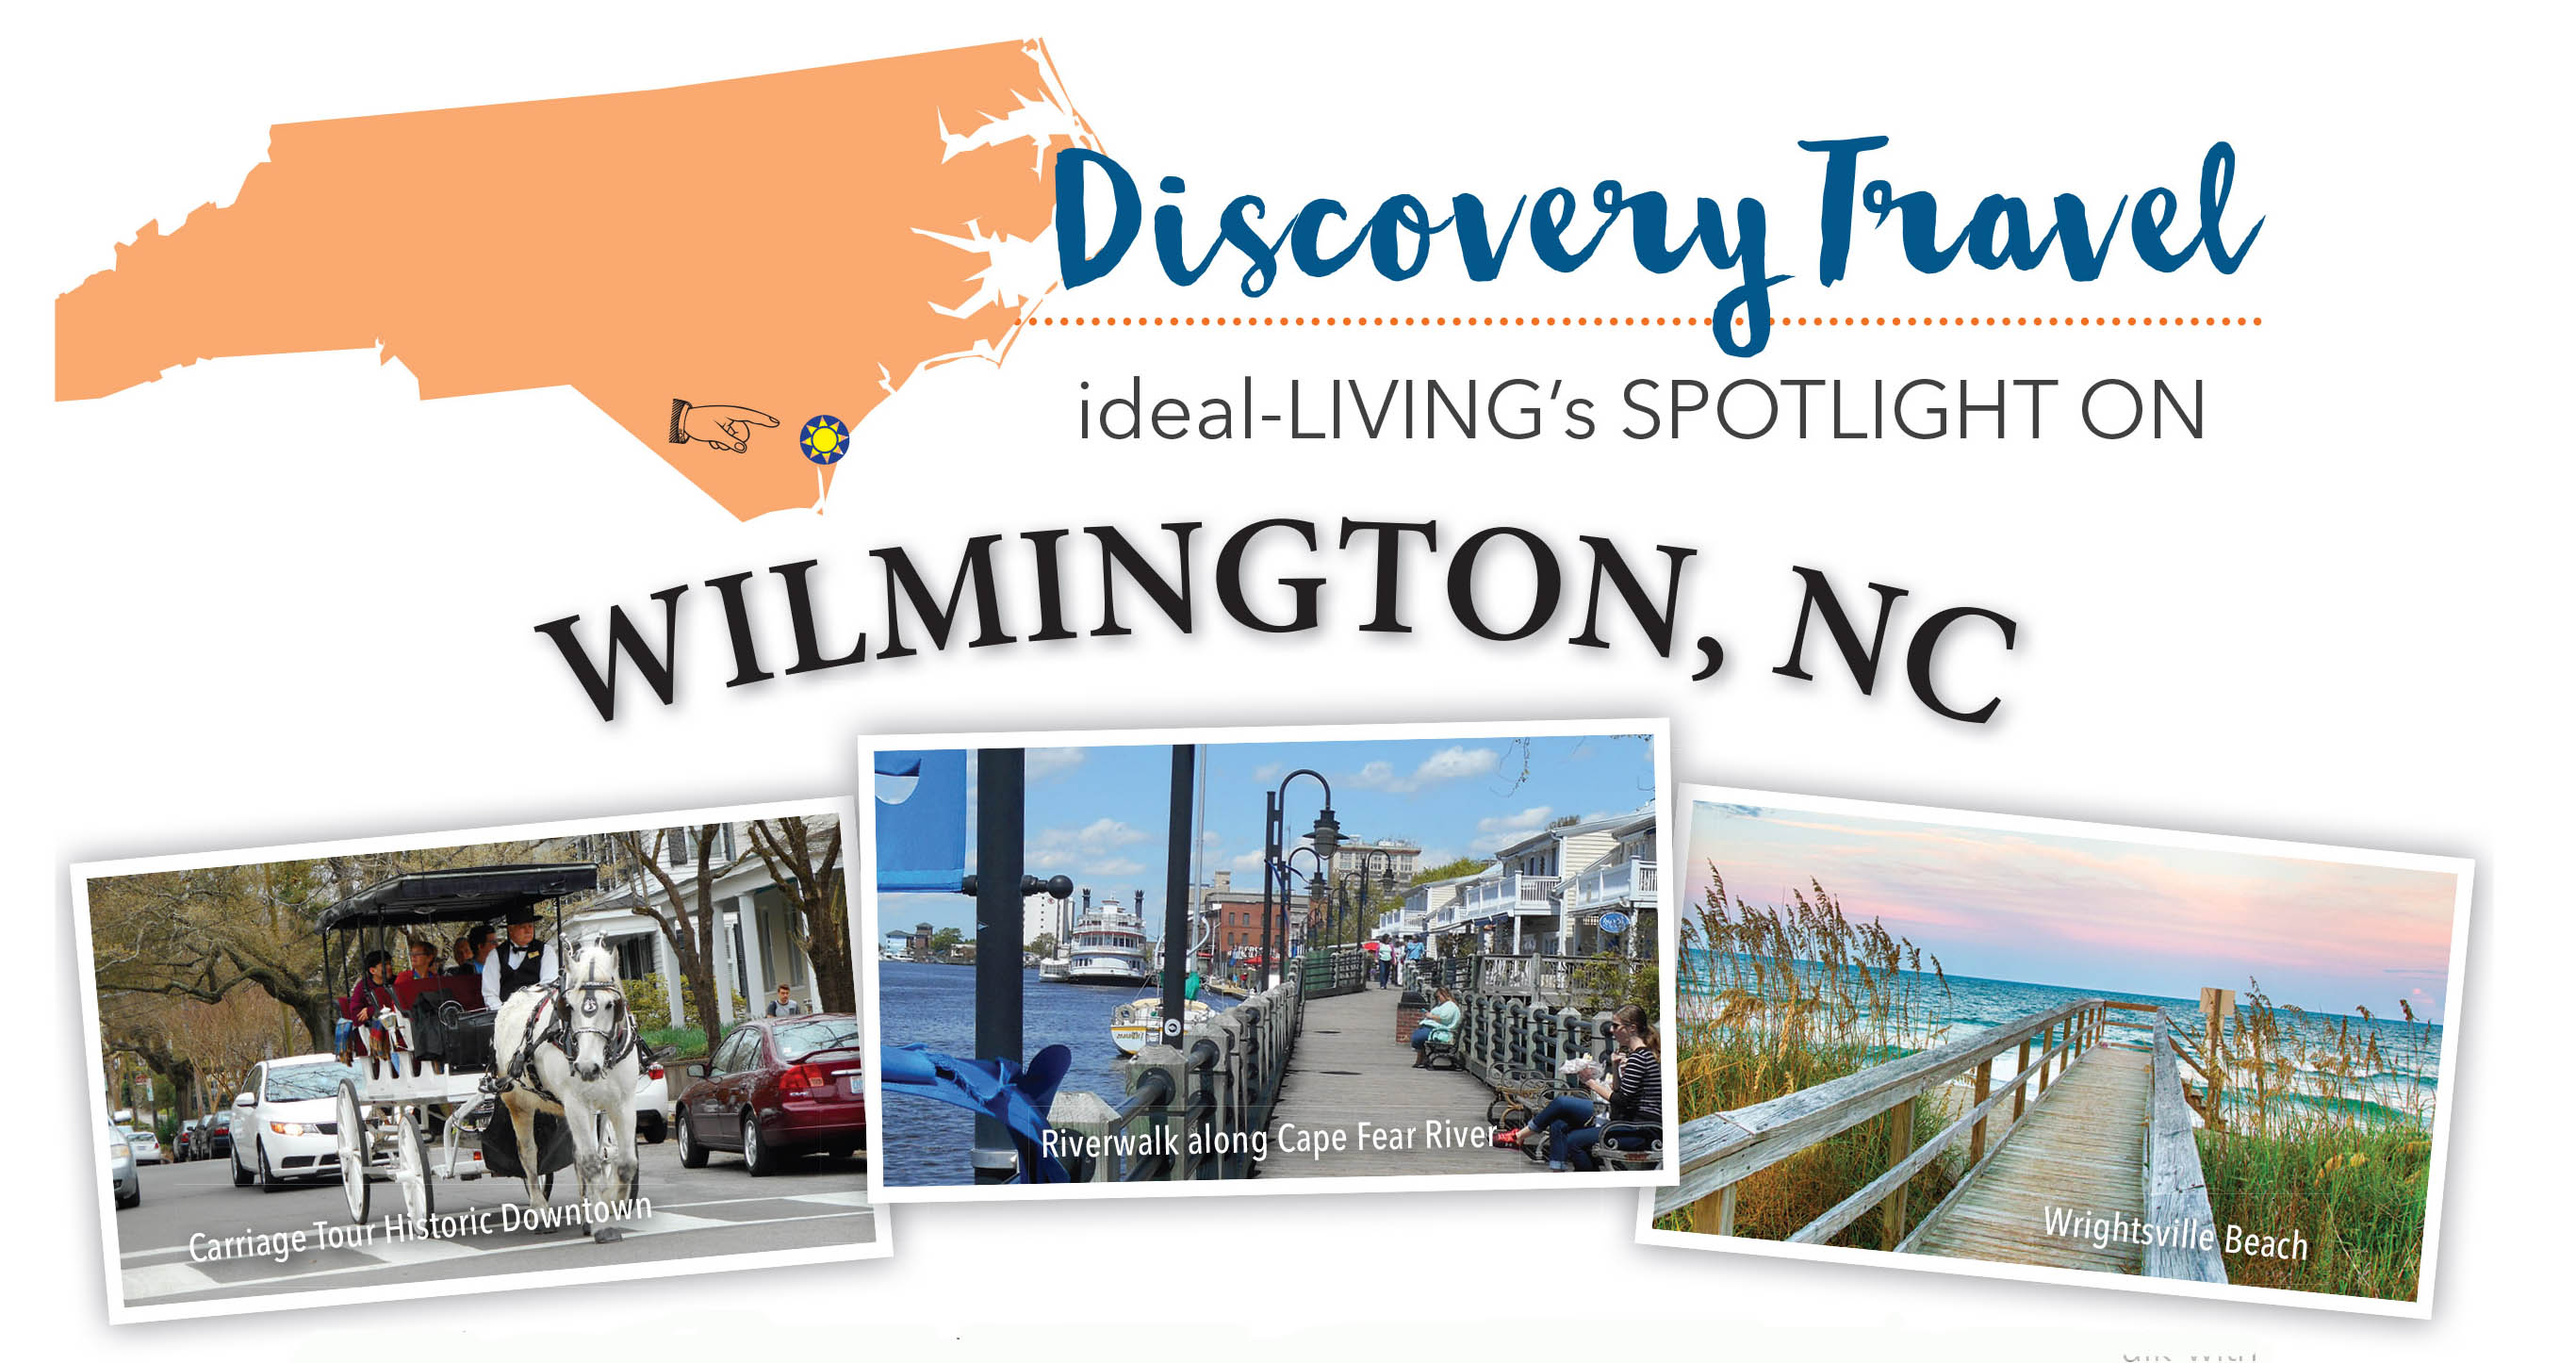 Discovery Travel Wilmington NC